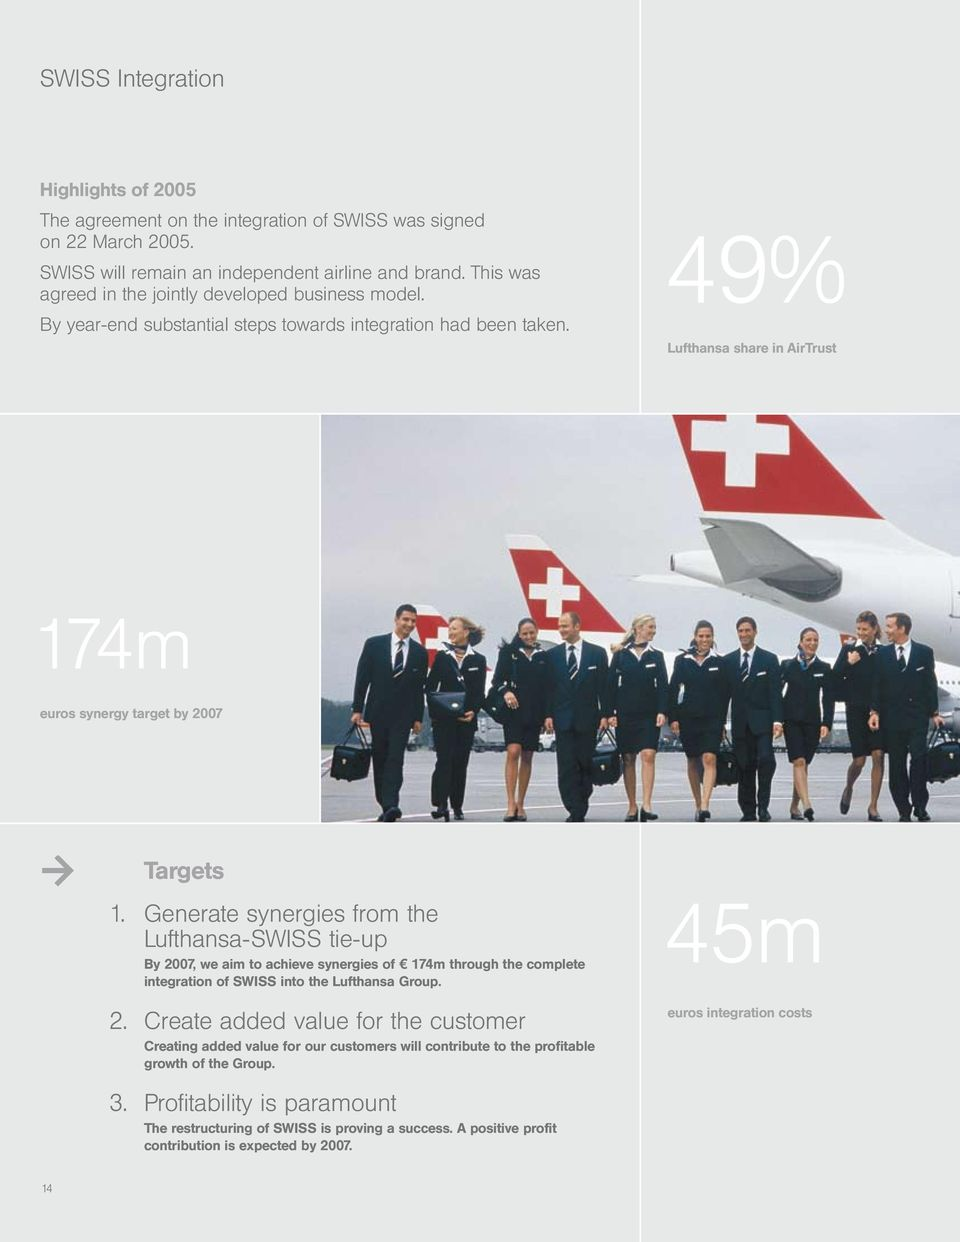 Generate synergies from the Lufthansa-SWISS tie-up By 2007, we aim to achieve synergies of 174m through the complete integration of SWISS into the Lufthansa Group. 2. Create added value for the customer Creating added value for our customers will contribute to the profitable growth of the Group.